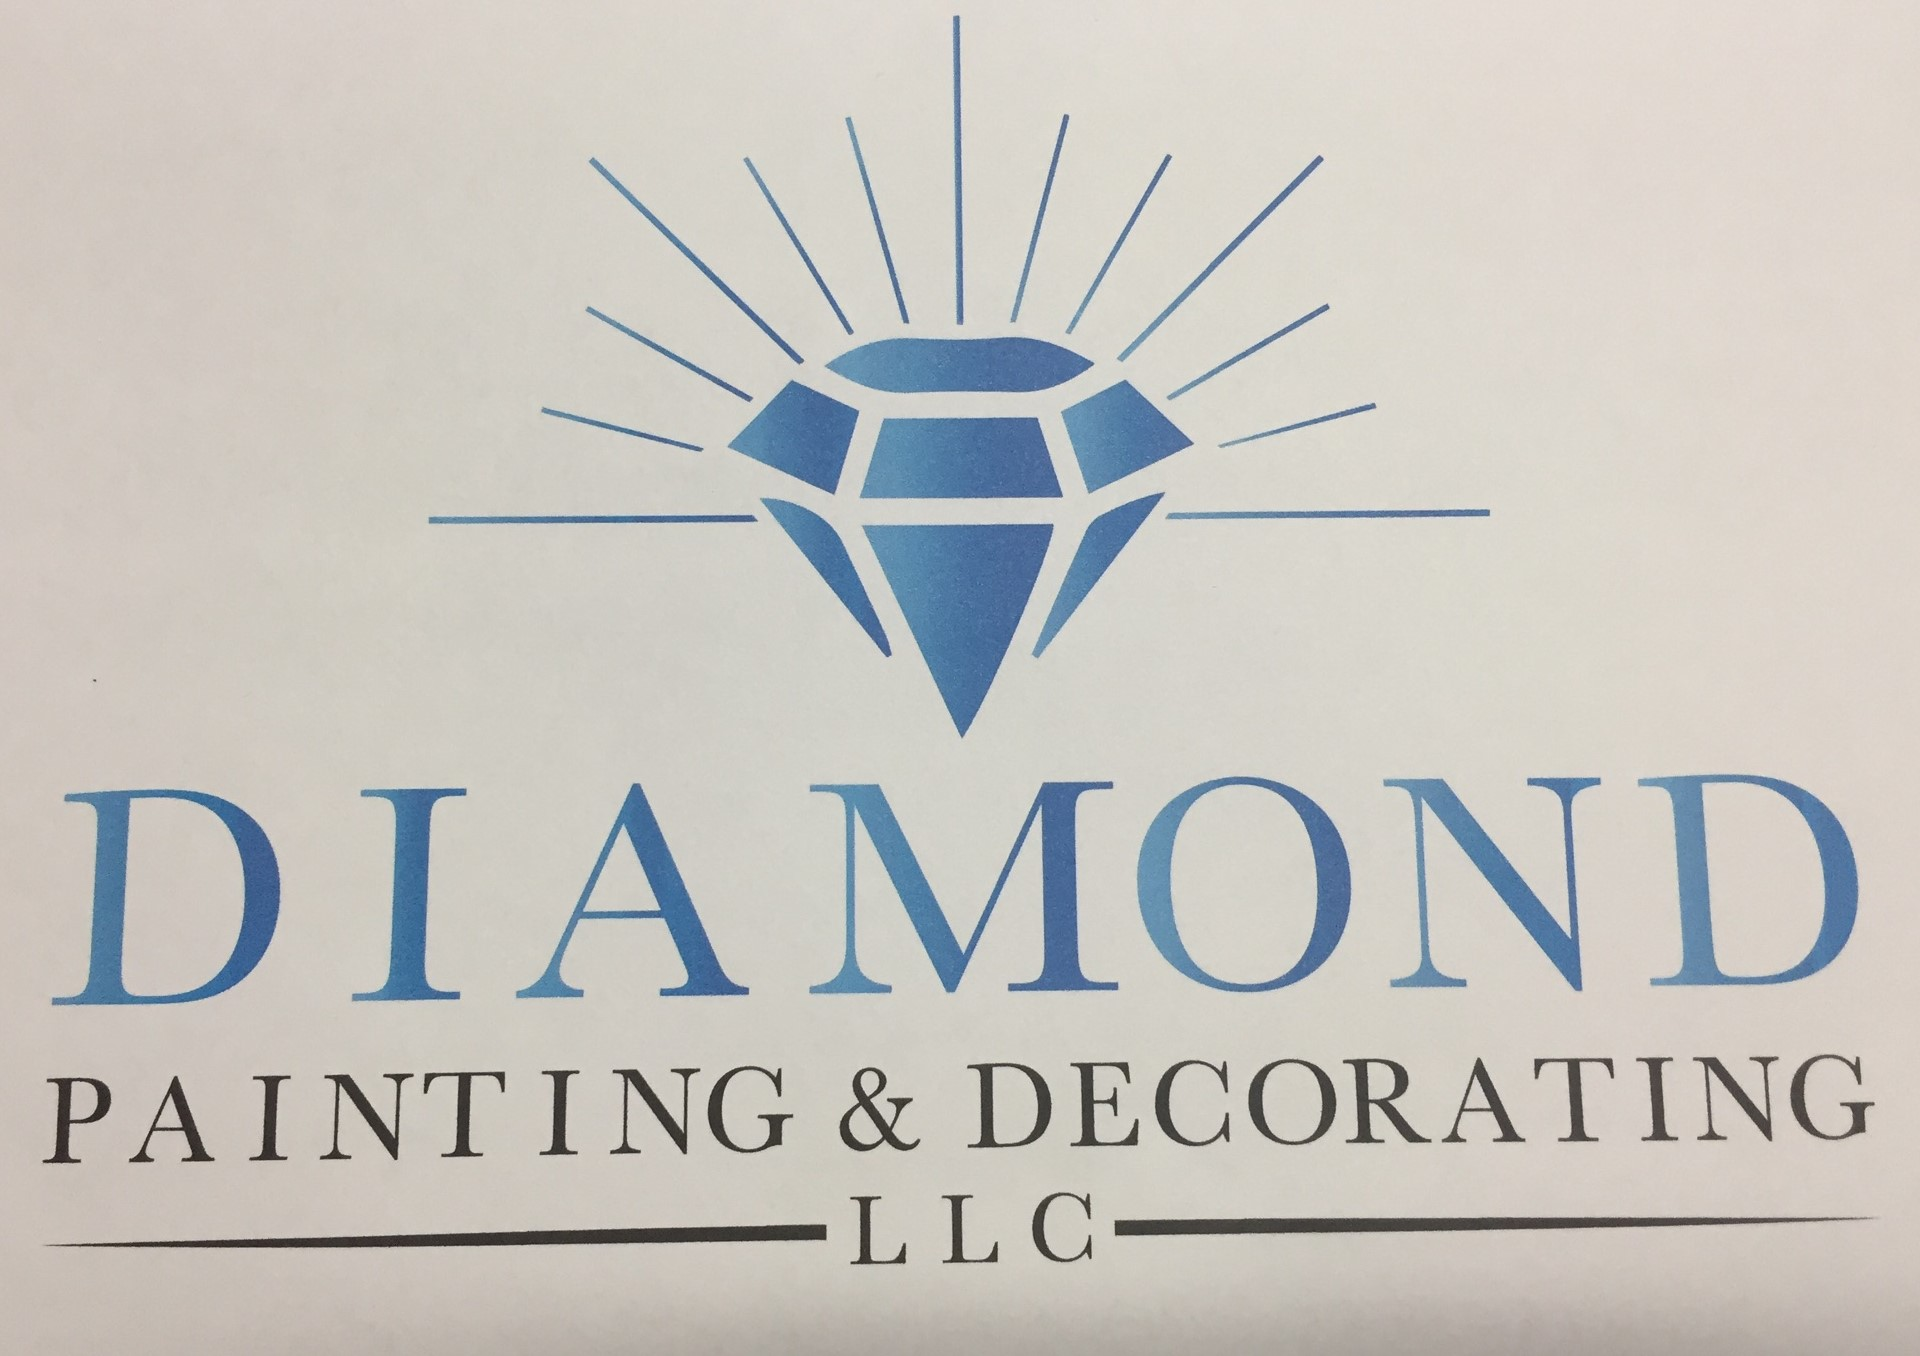 Diamond Painting & Decorating LLC